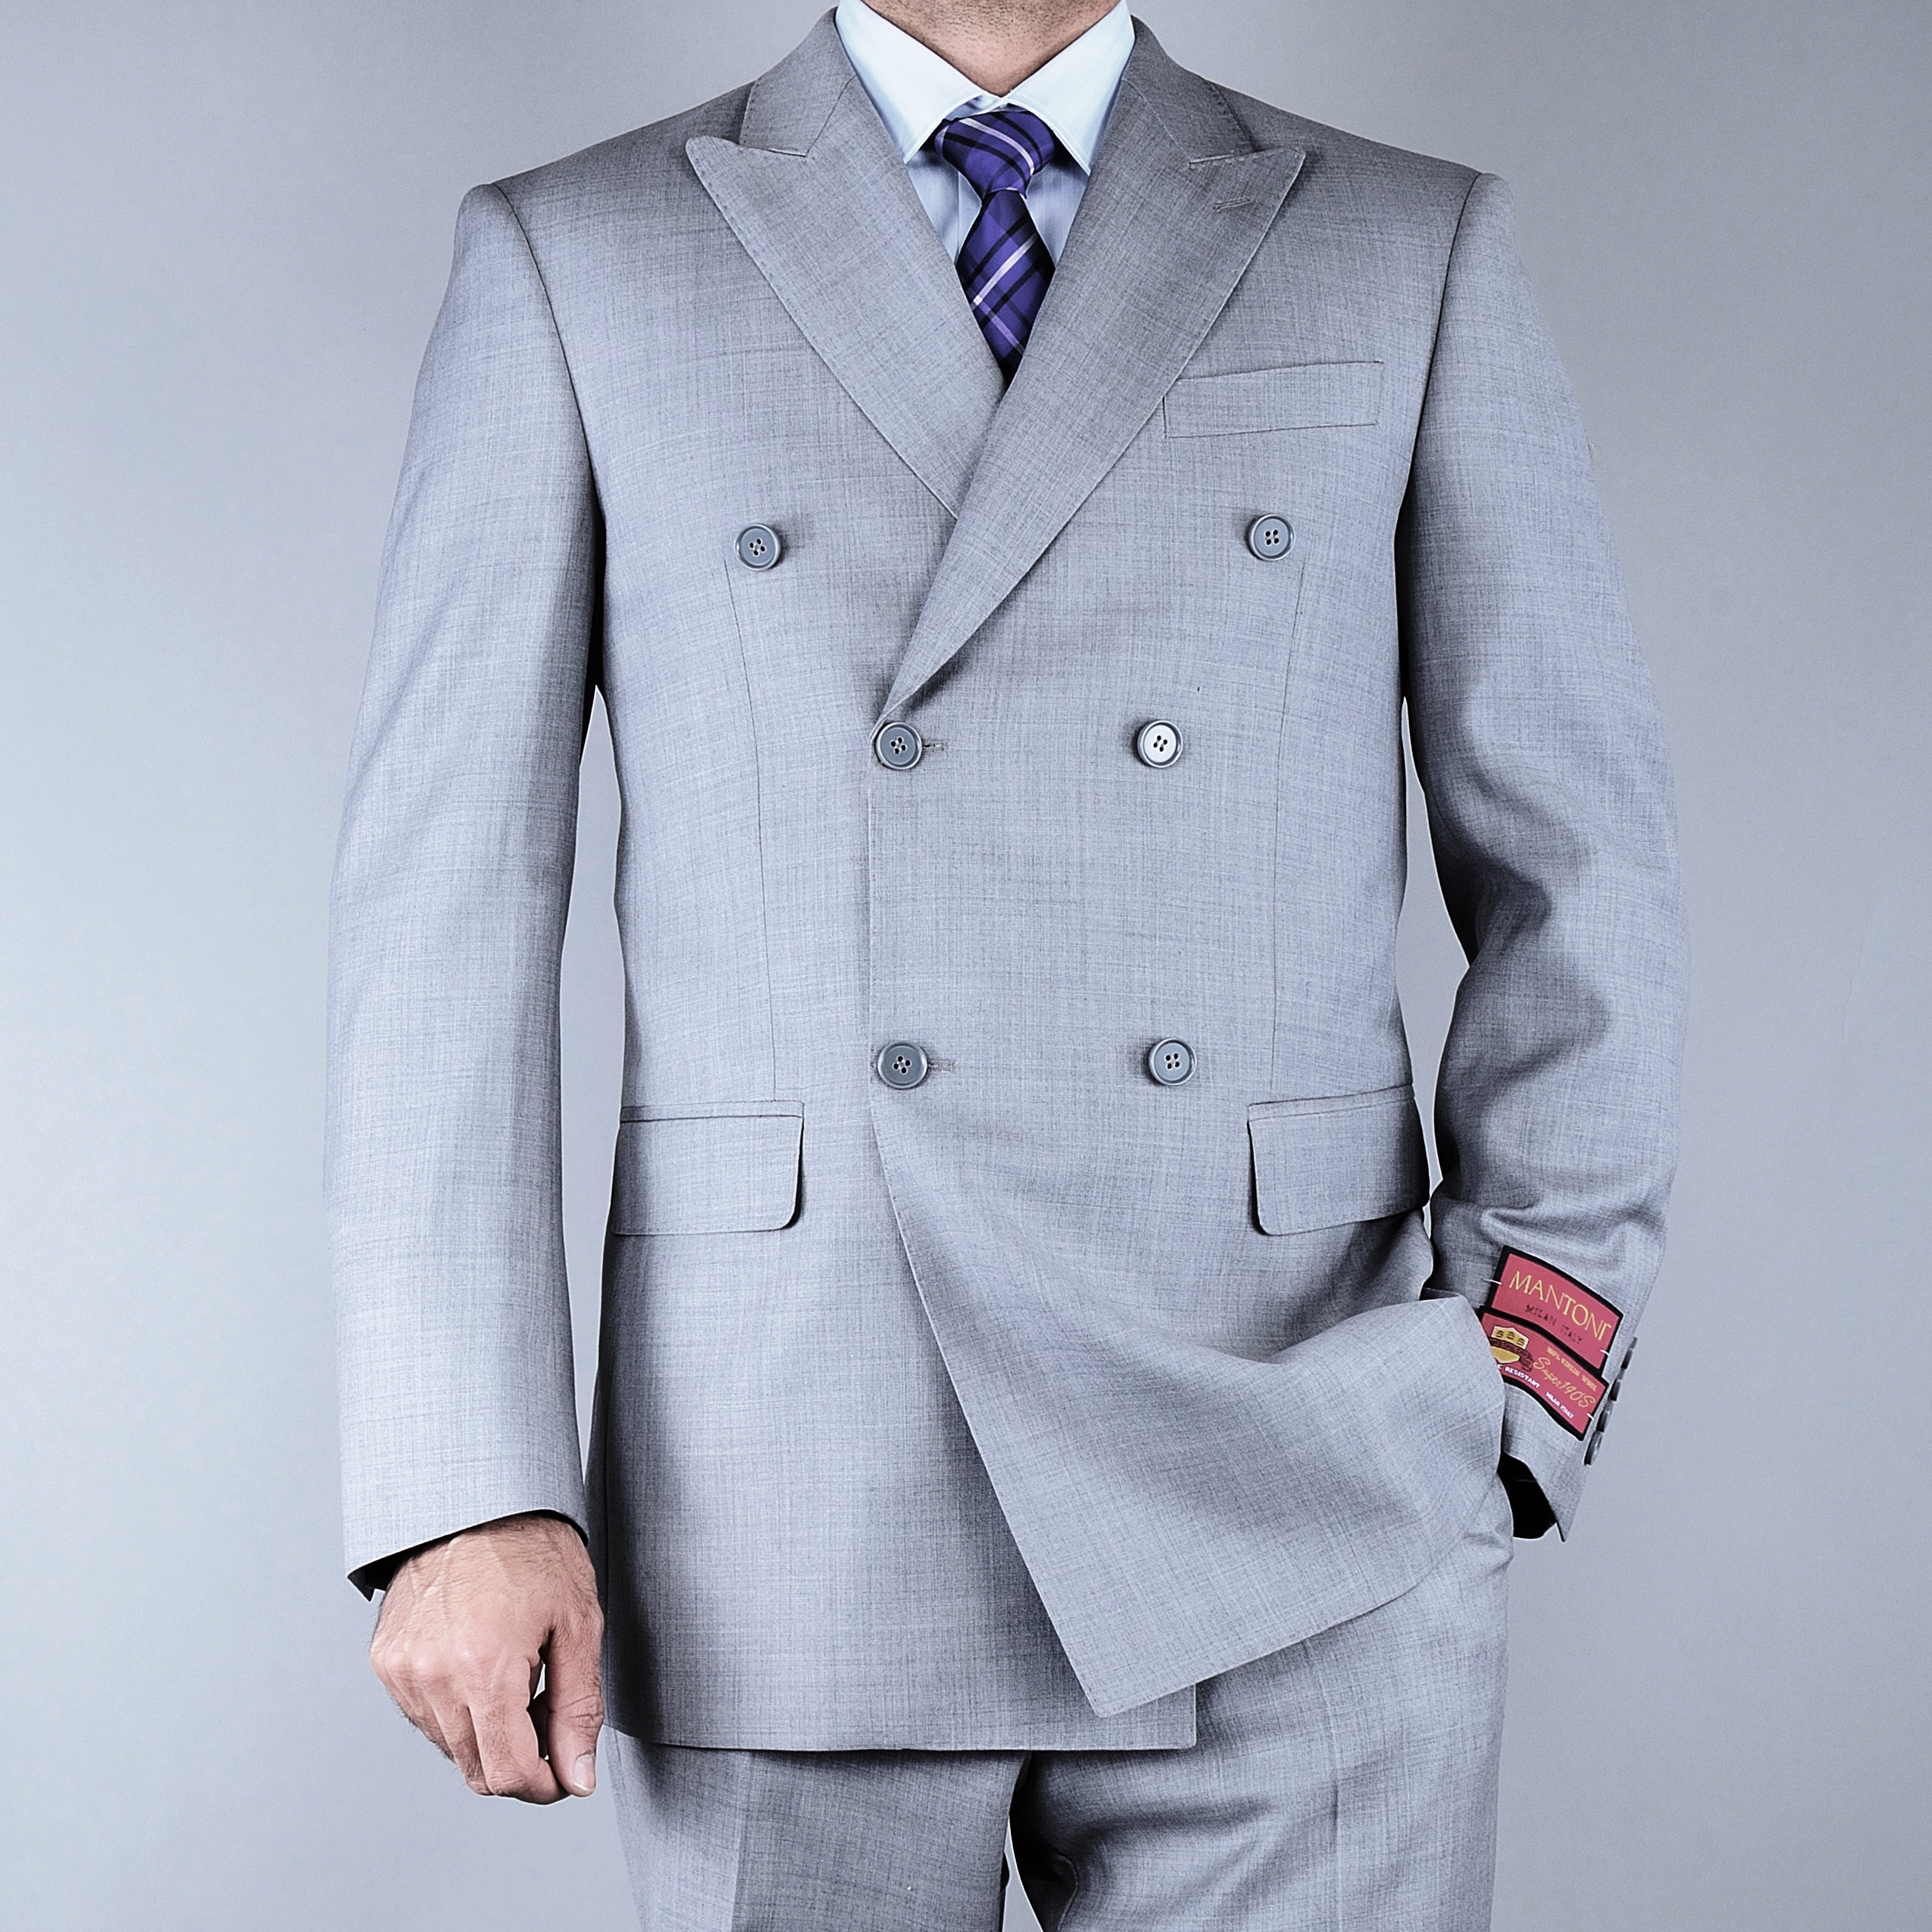 Men's Classic Fit Textured Grey Double Breasted Wool Suit